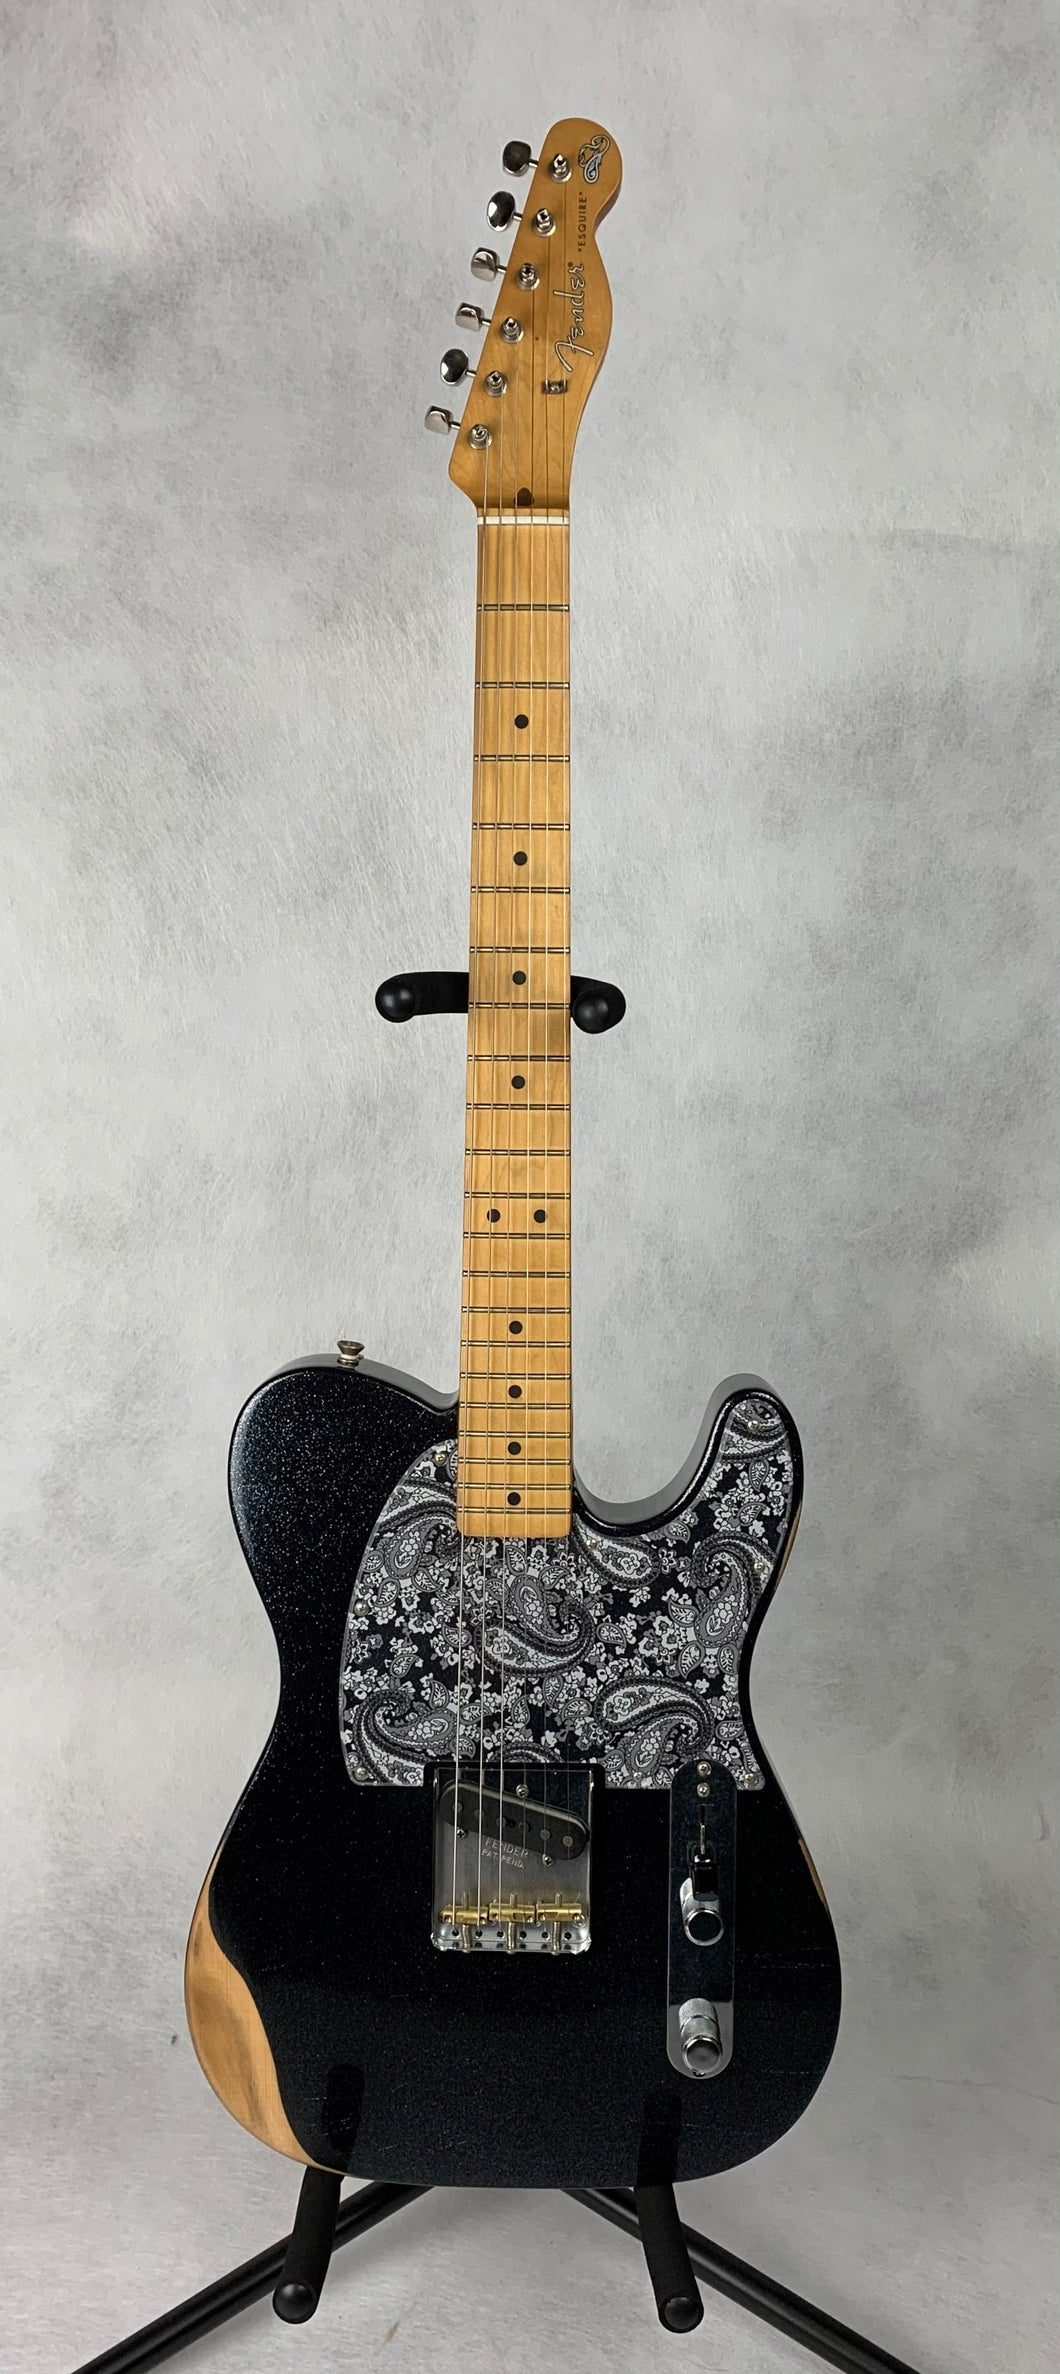 Fender Brad Paisley Road Warn Esquire - Black Sparkle